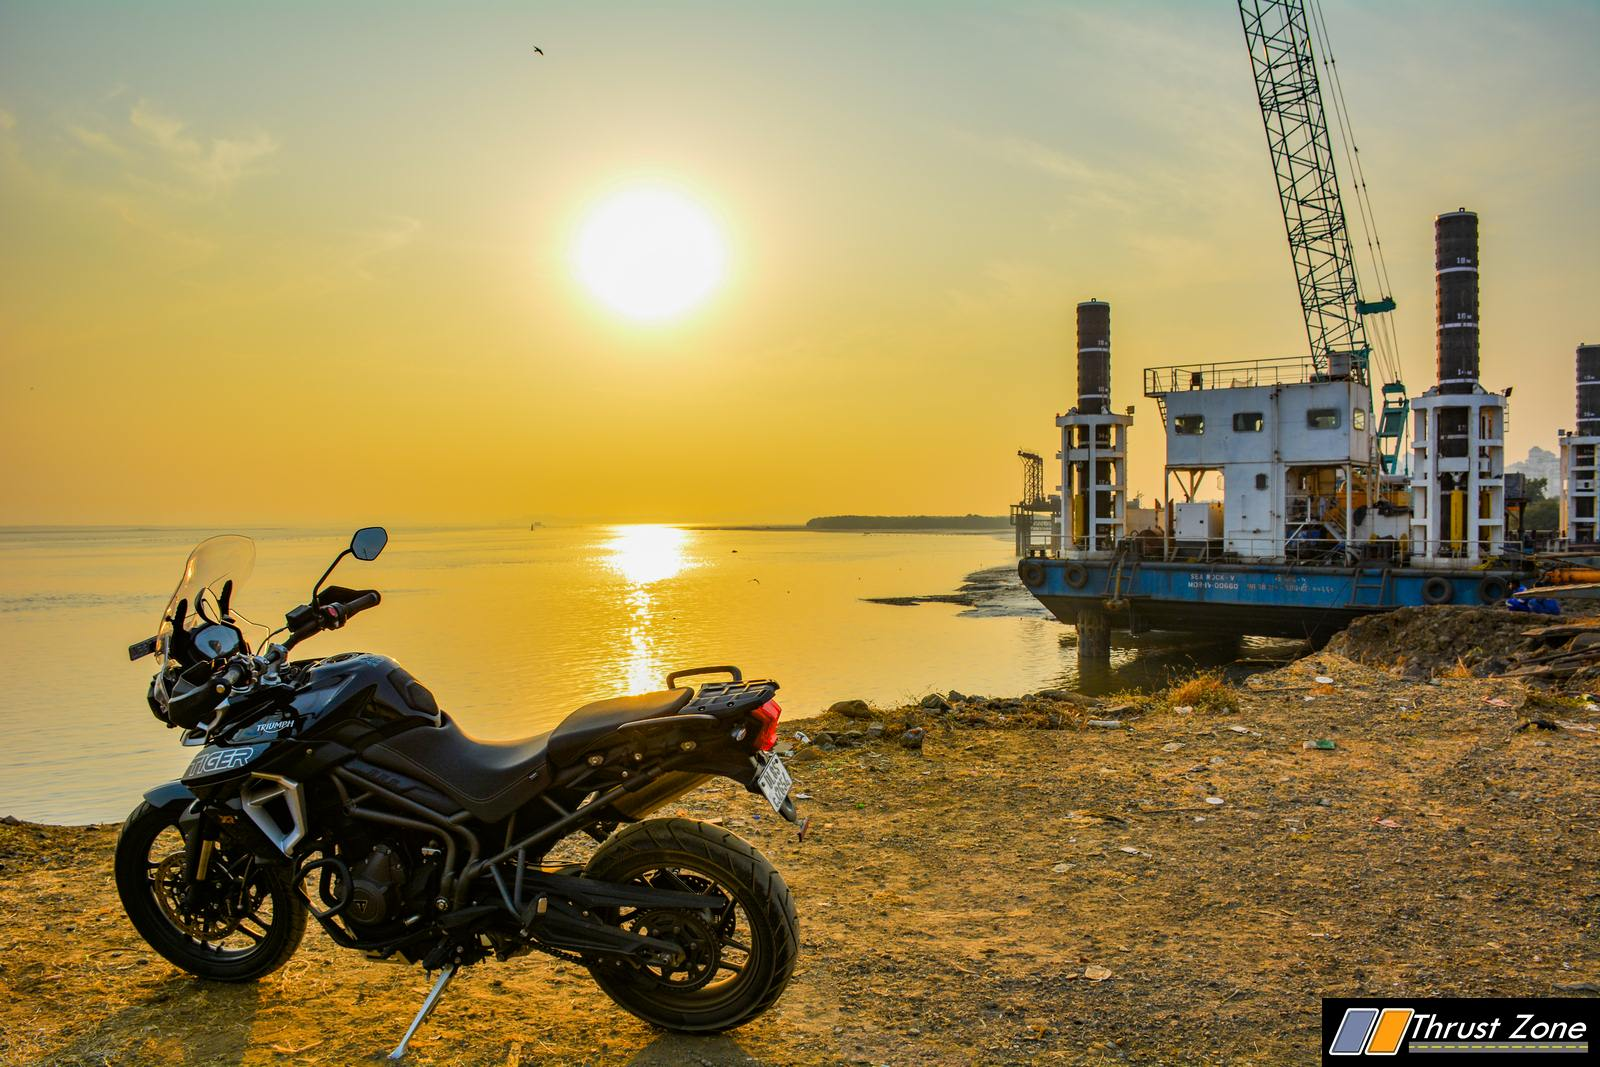 http://www.thrustzone.com/wp-content/uploads/2019/01/2018-Triumph-Tiger-800-india-review-1-2.jpg